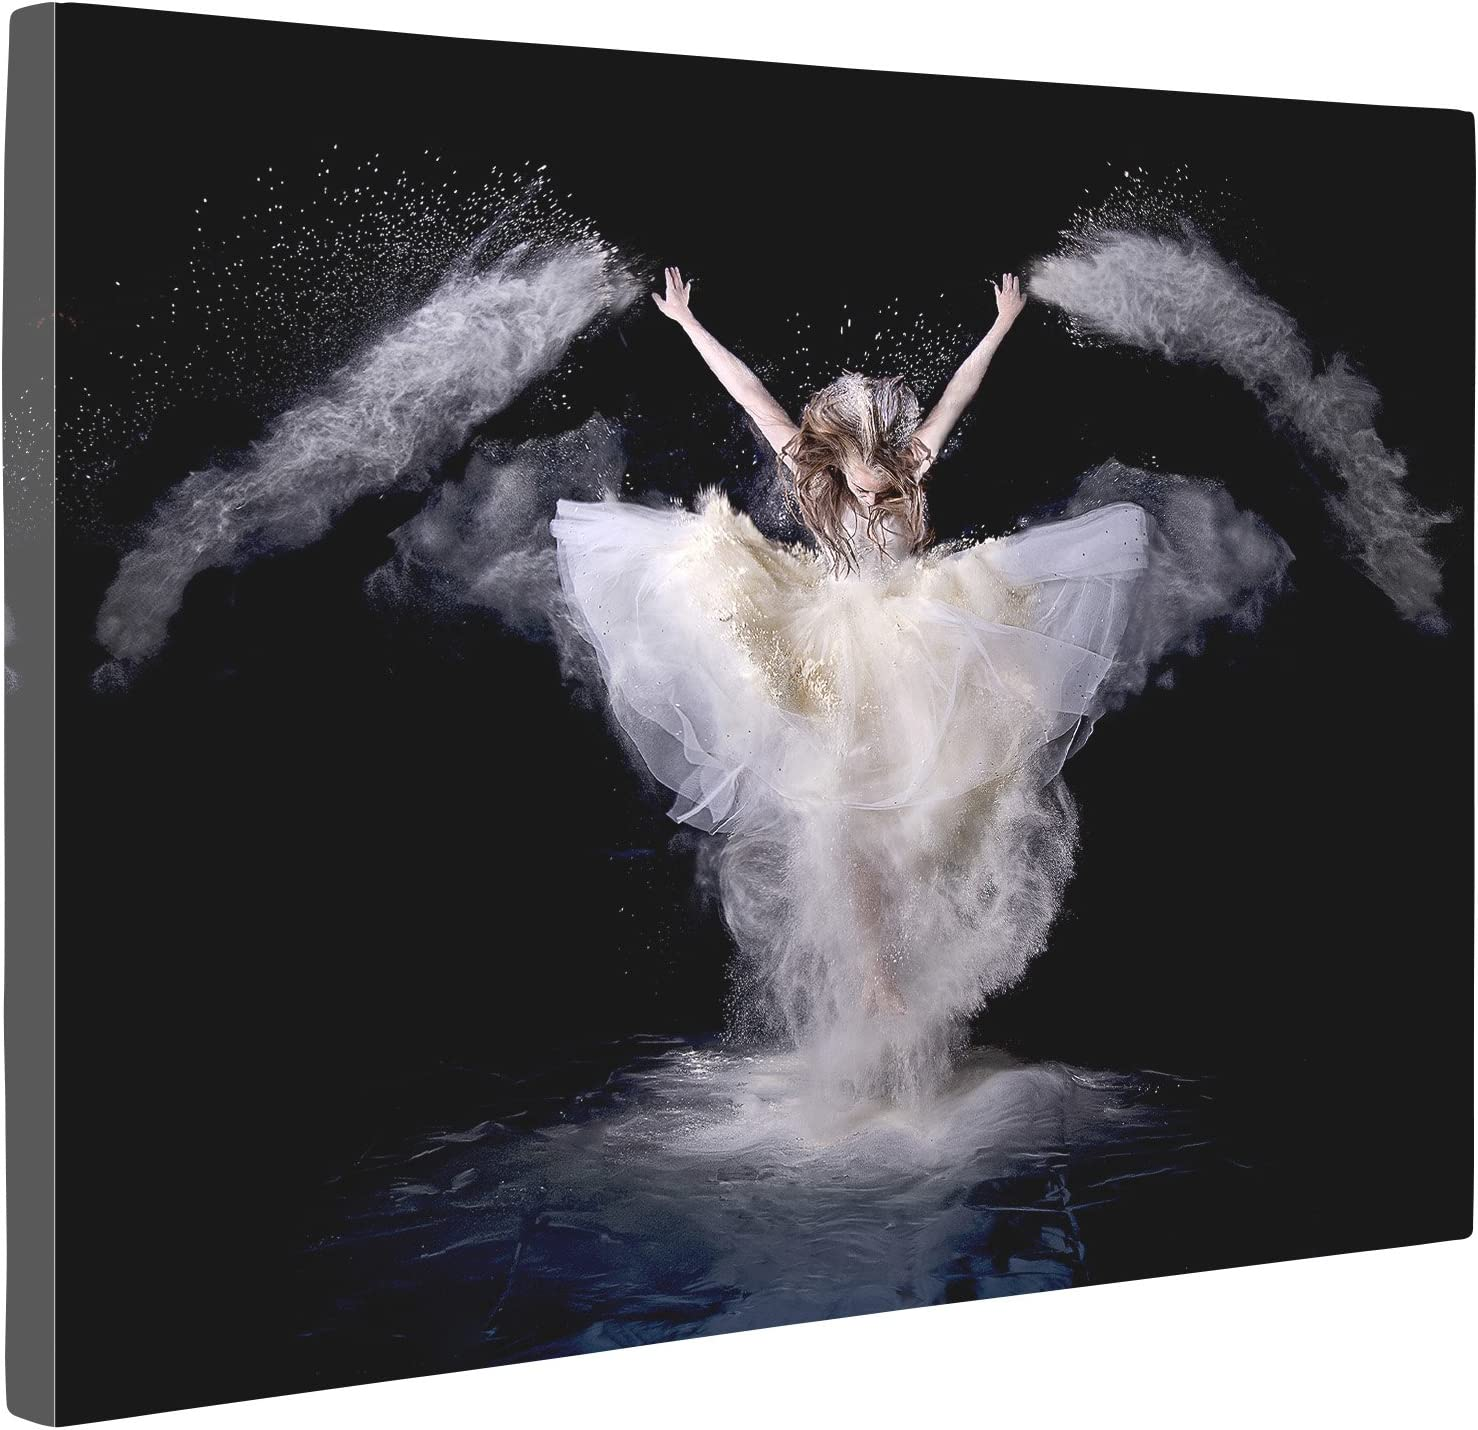 Niwo Art (TM - White Skirt Dancing Angel - Ballet Dancing Series. Modern Abstract Oil Painting Reproduction. Giclee Canvas Prints Wall Art for Home Decor, Stretched and Framed Ready to Hang